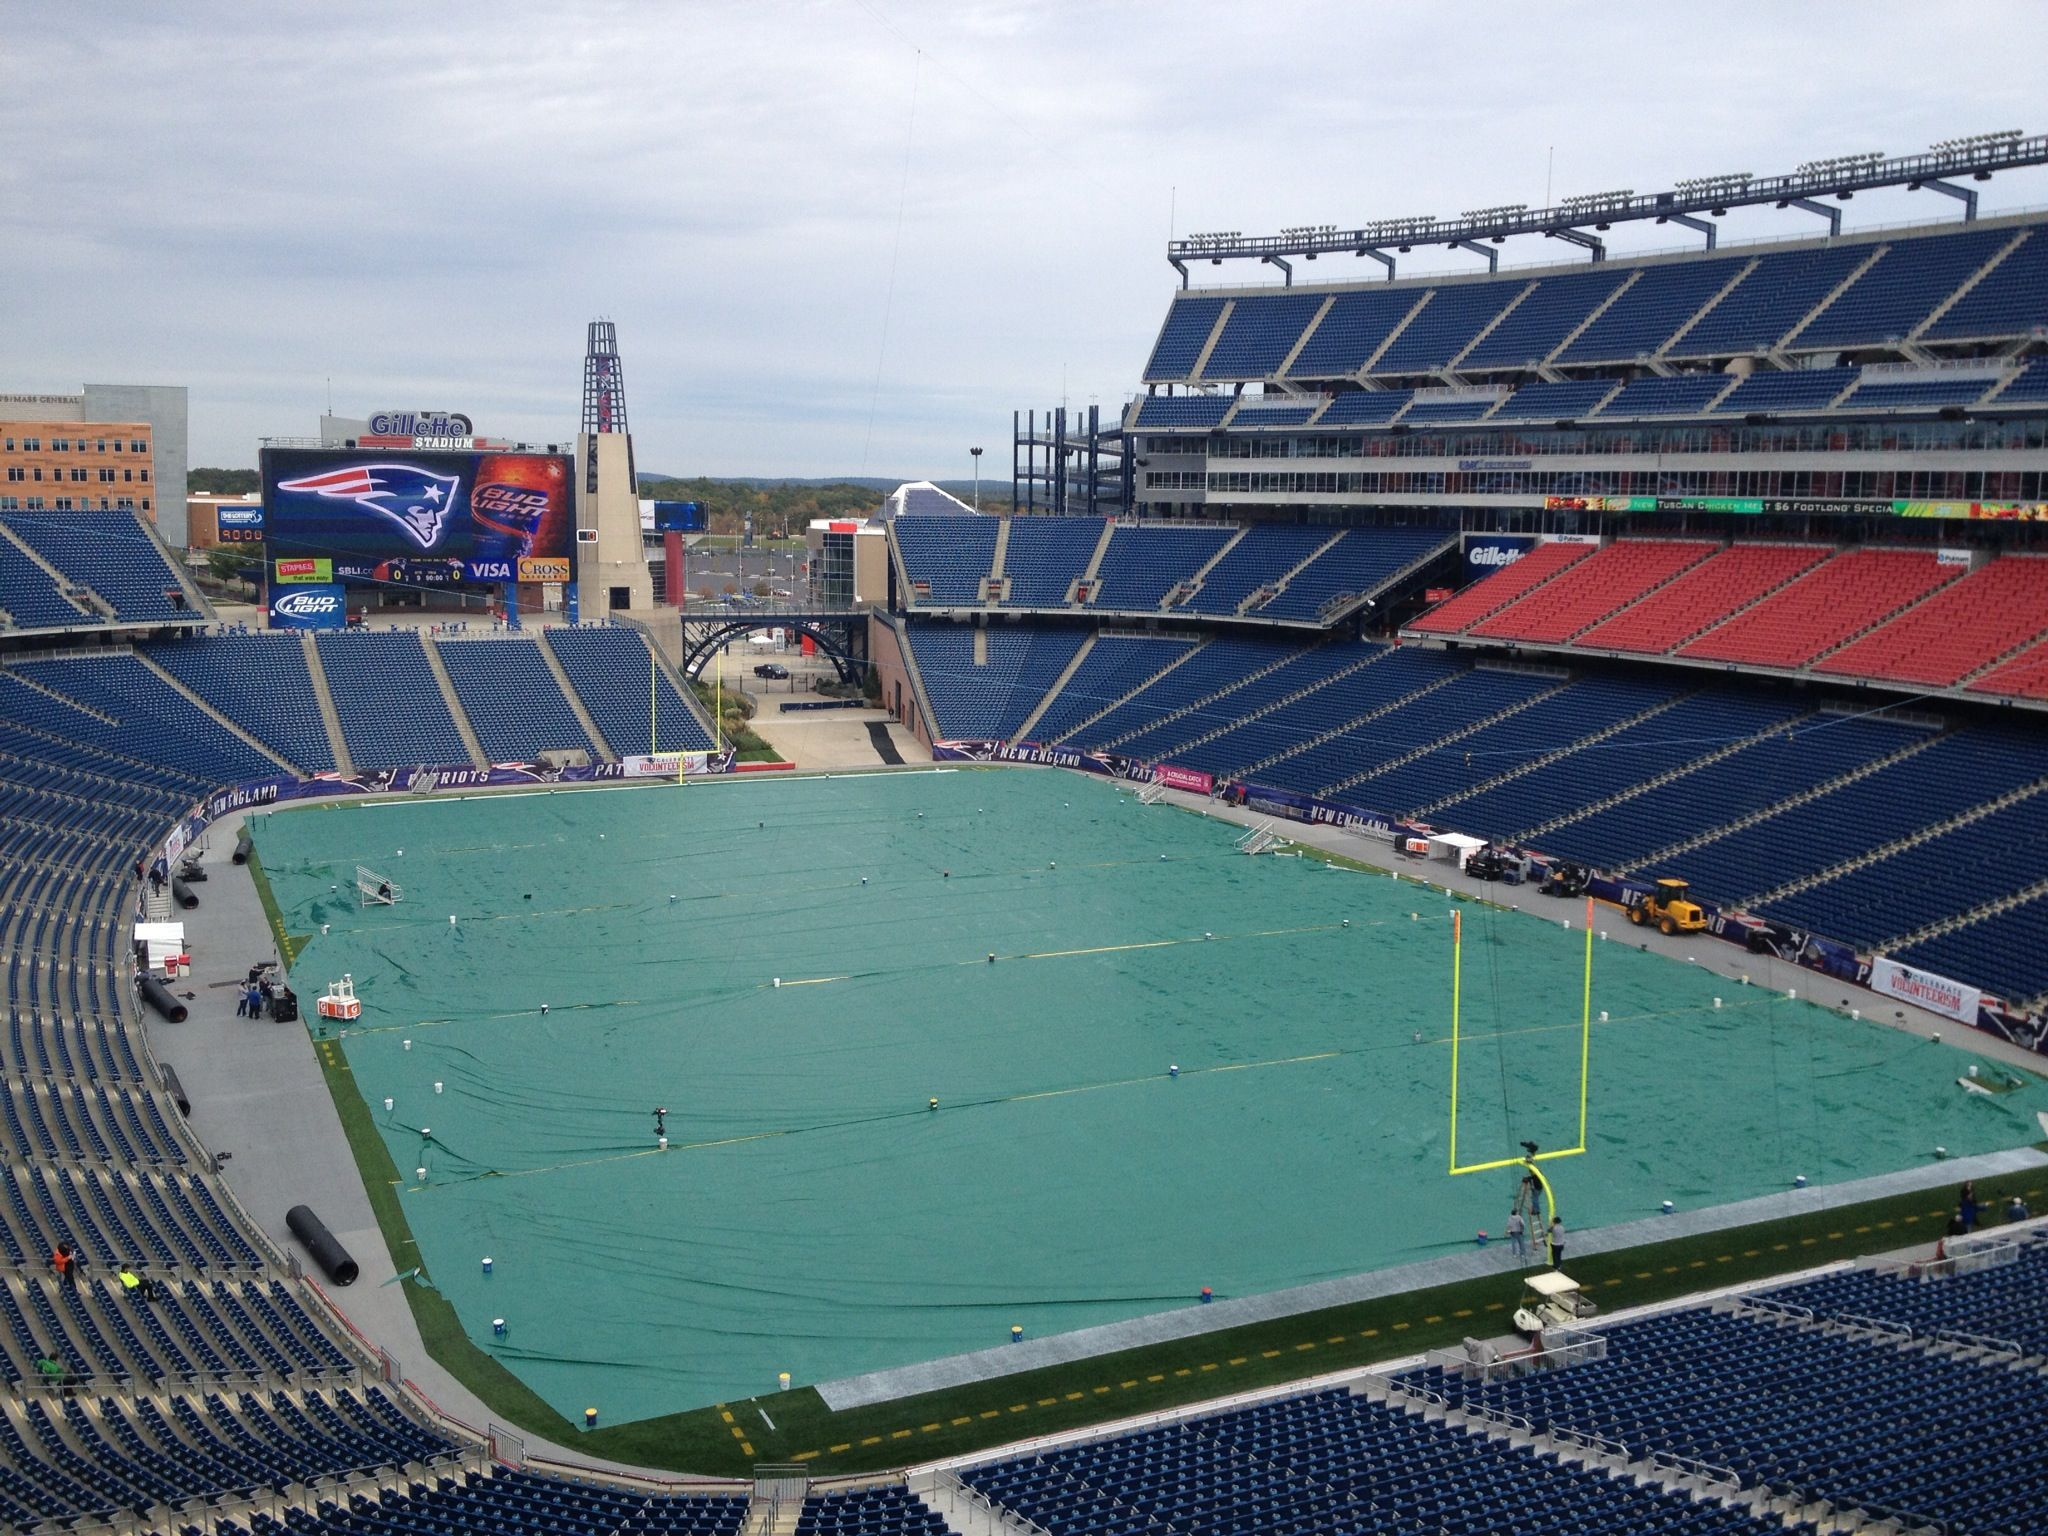 Gillette Stadium With Tarp Covering The Field Before The Patriots Won Out And Beat The Broncos Sunday Gillette Stadium Stadium Tennis Court